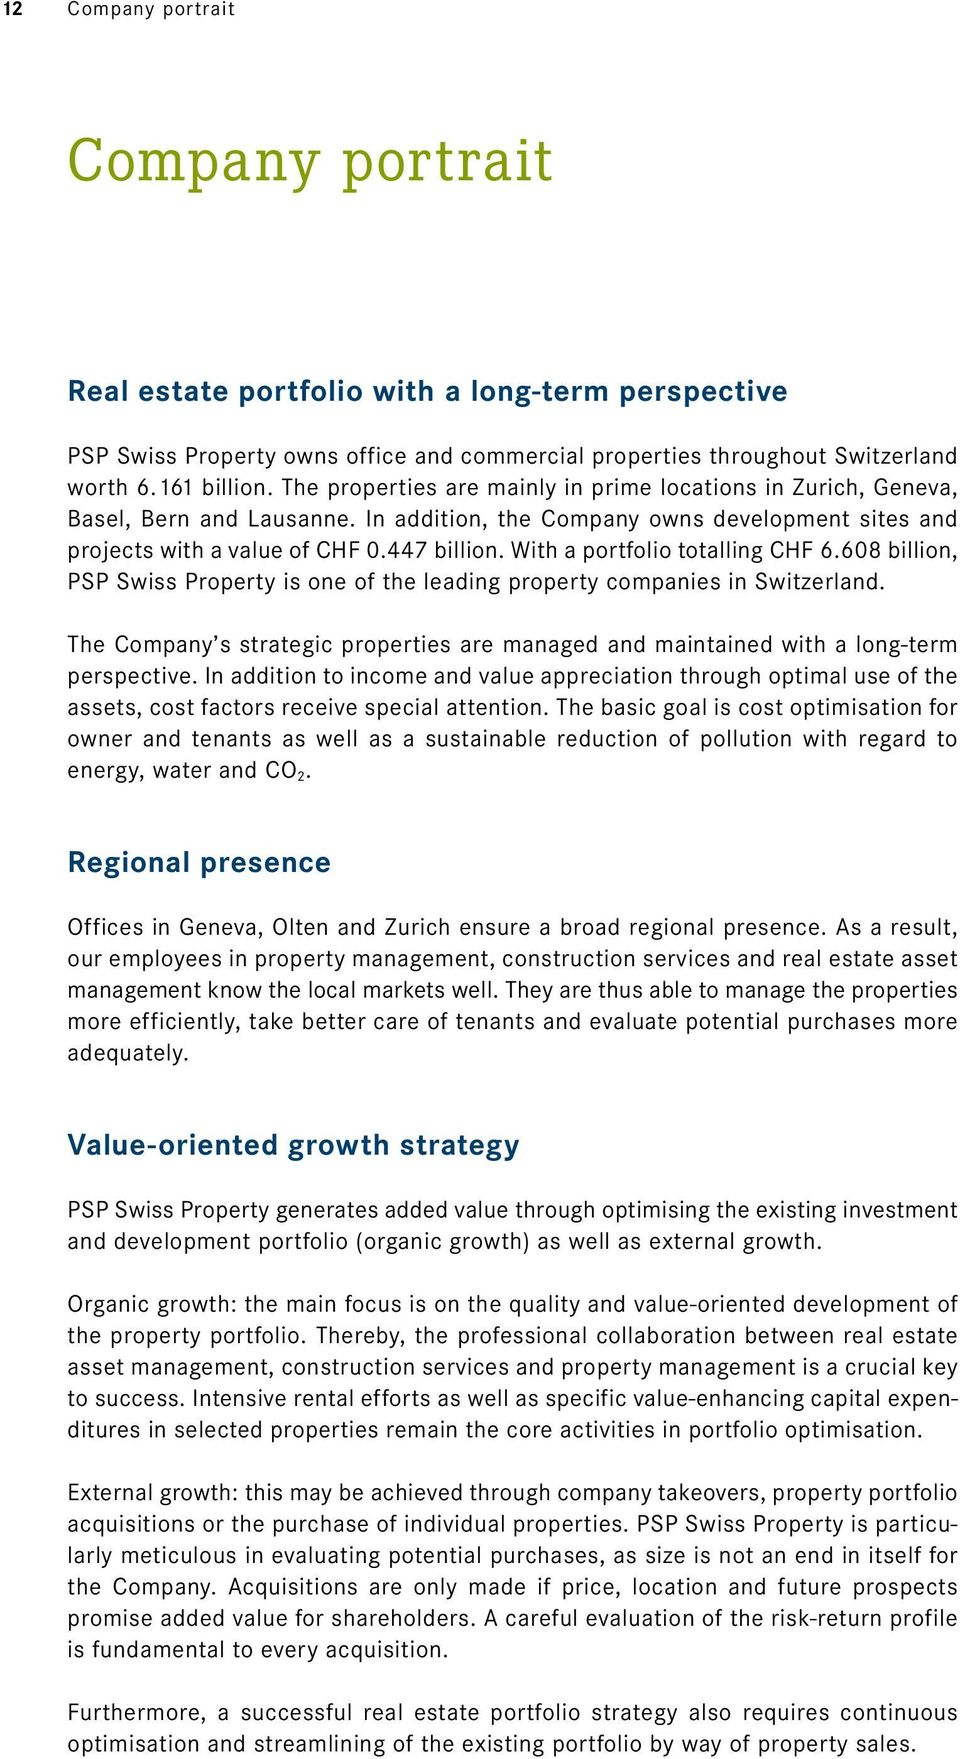 With a portfolio totalling CHF 6.608 billion, PSP Swiss Property is one of the leading property companies in Switzerland.